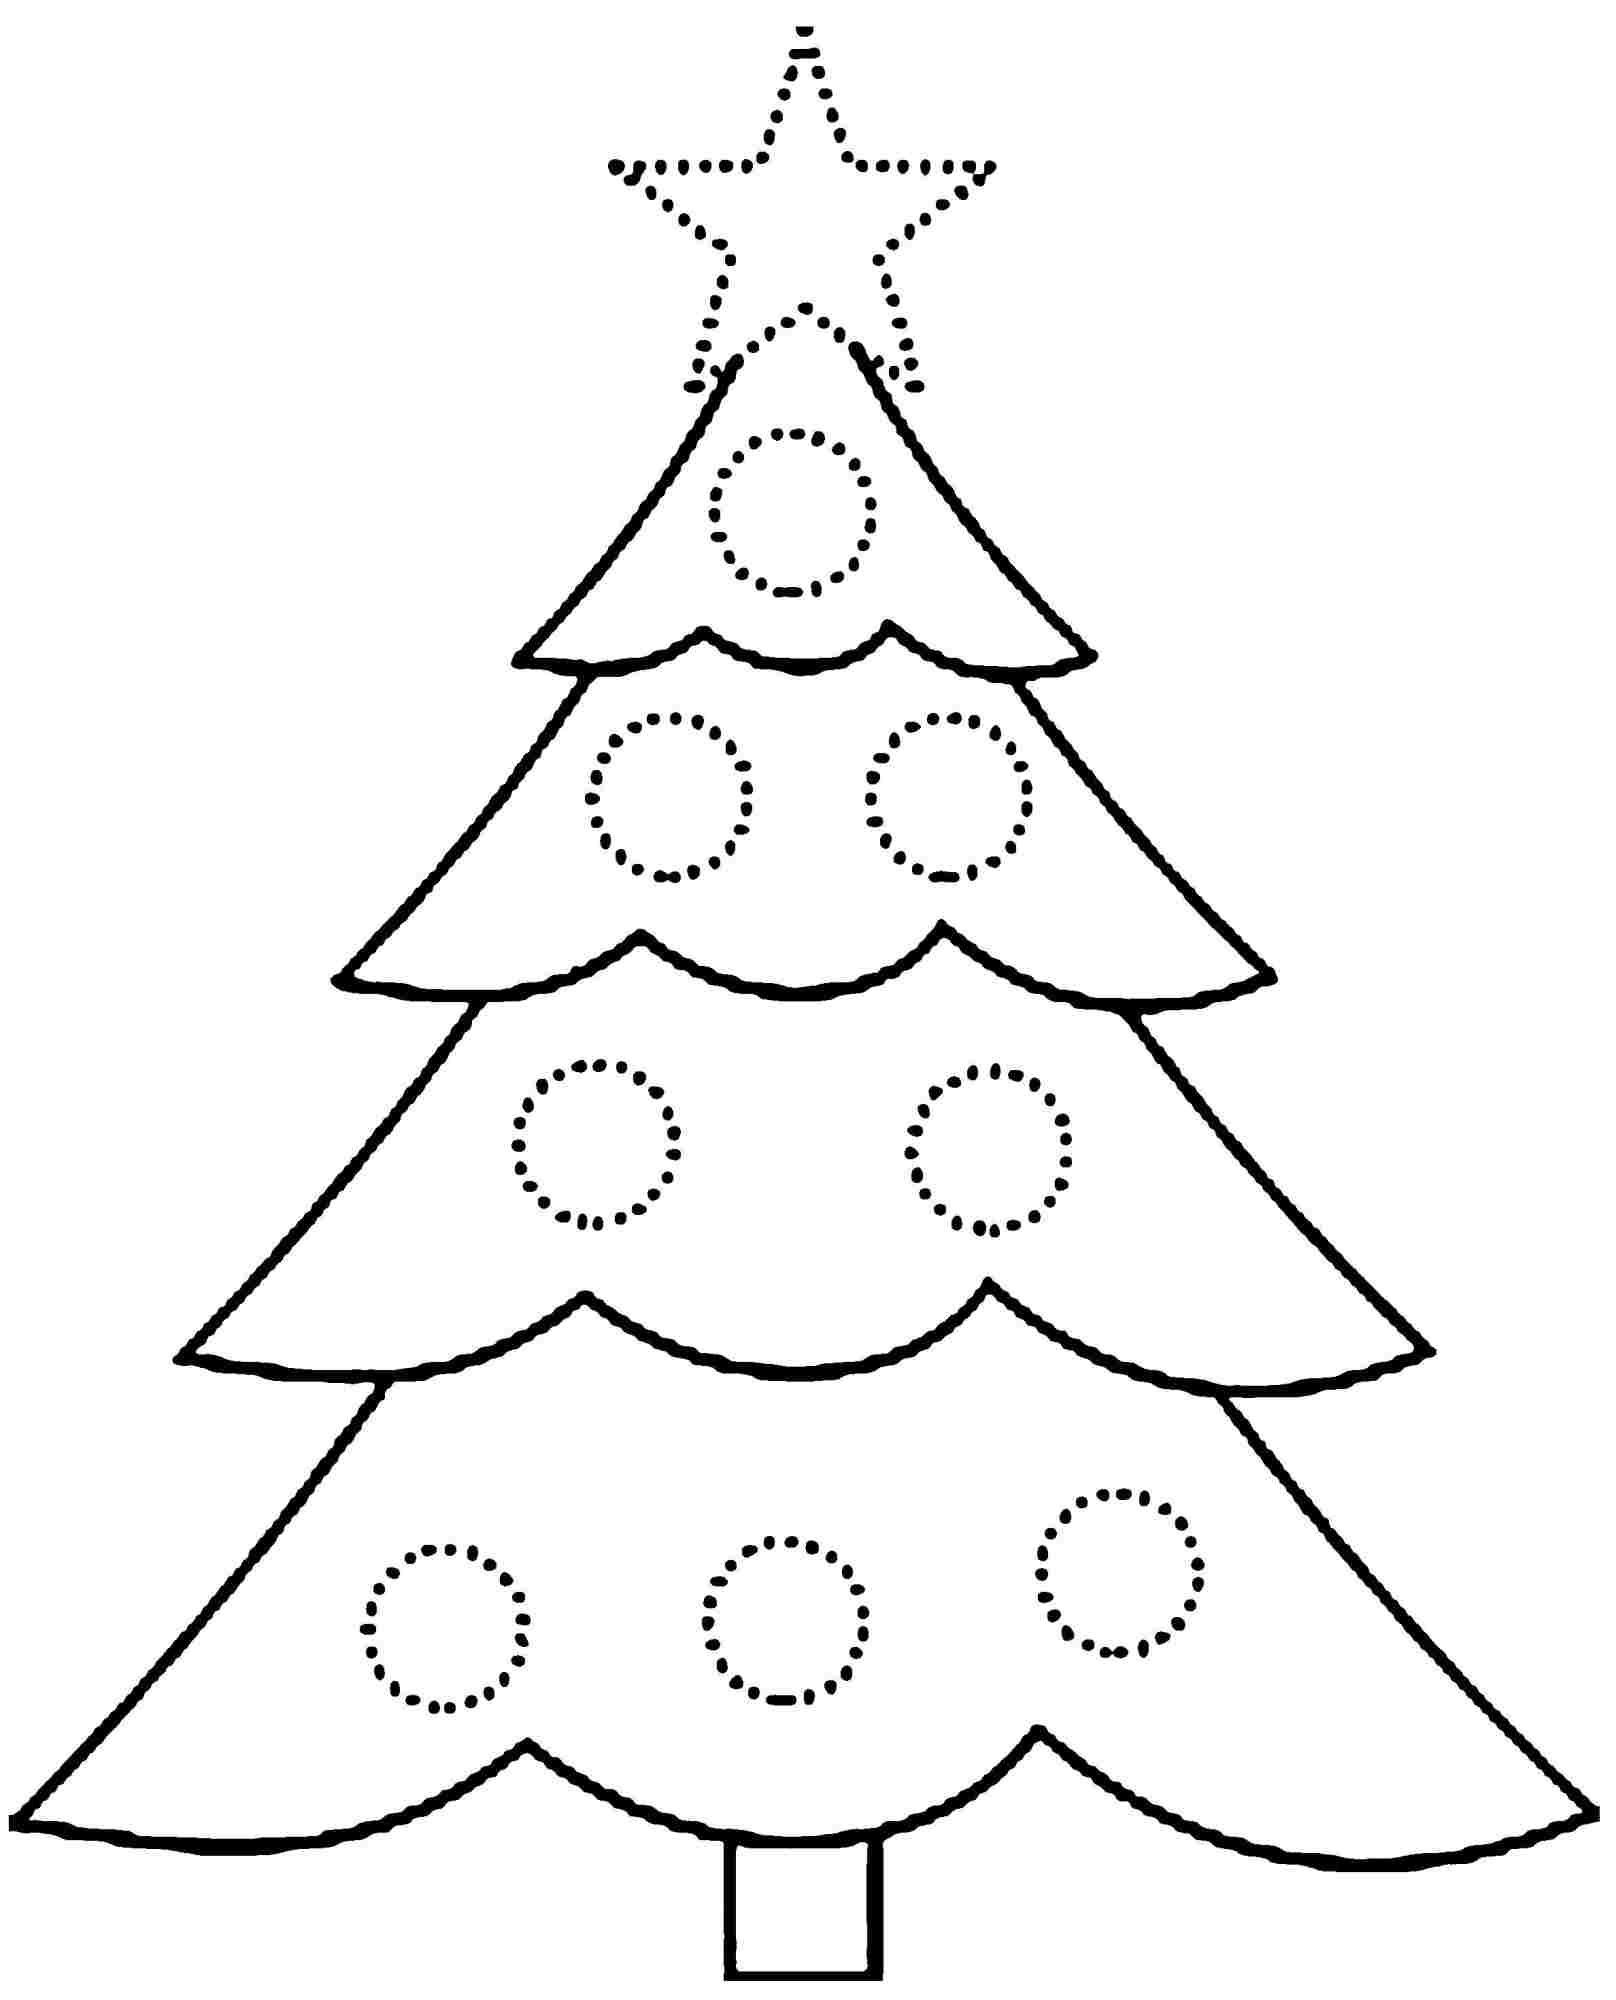 Christmas Tree Colouring Pages For Adults With Coloring Trees New Awesome Free